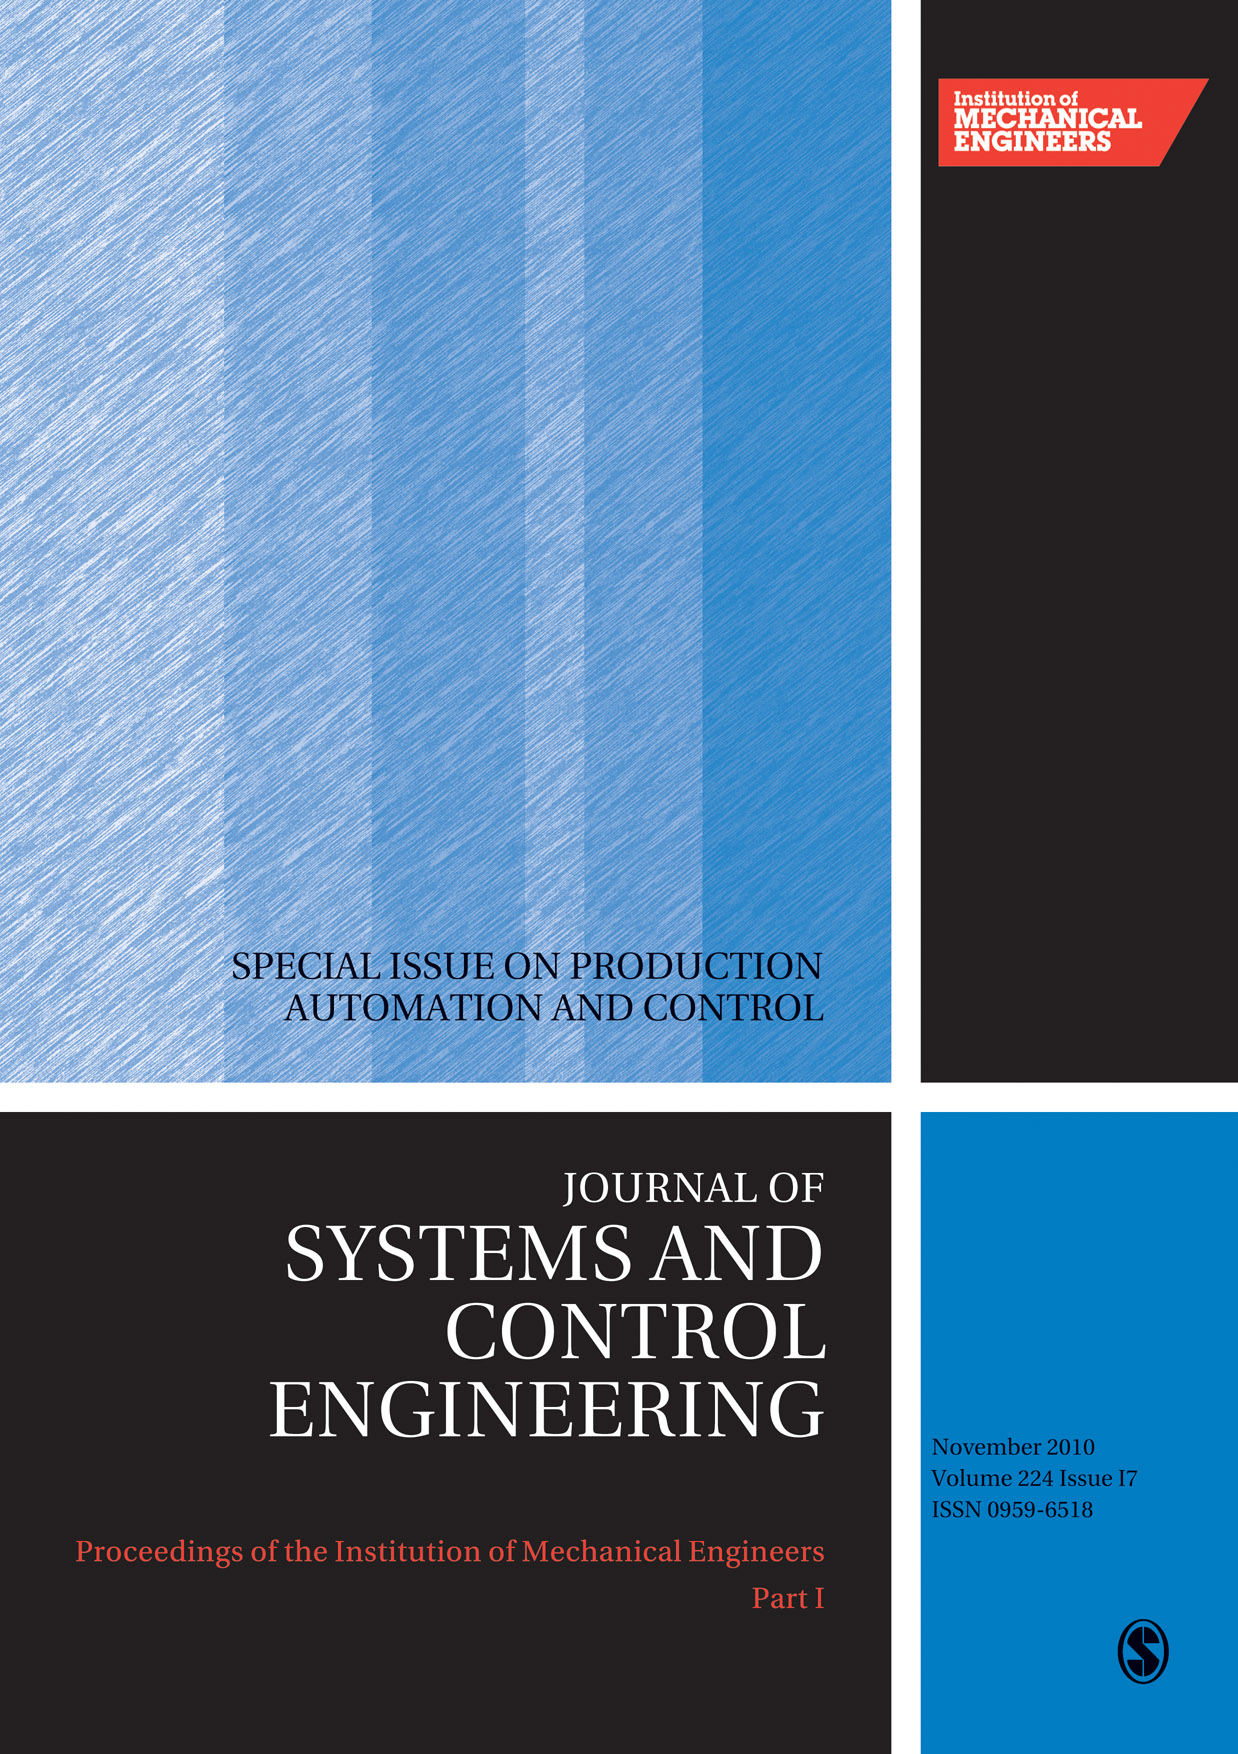 Proceedings of the Institution of Mechanical Engineers, Part I: Journal of Systems and Control Engineering